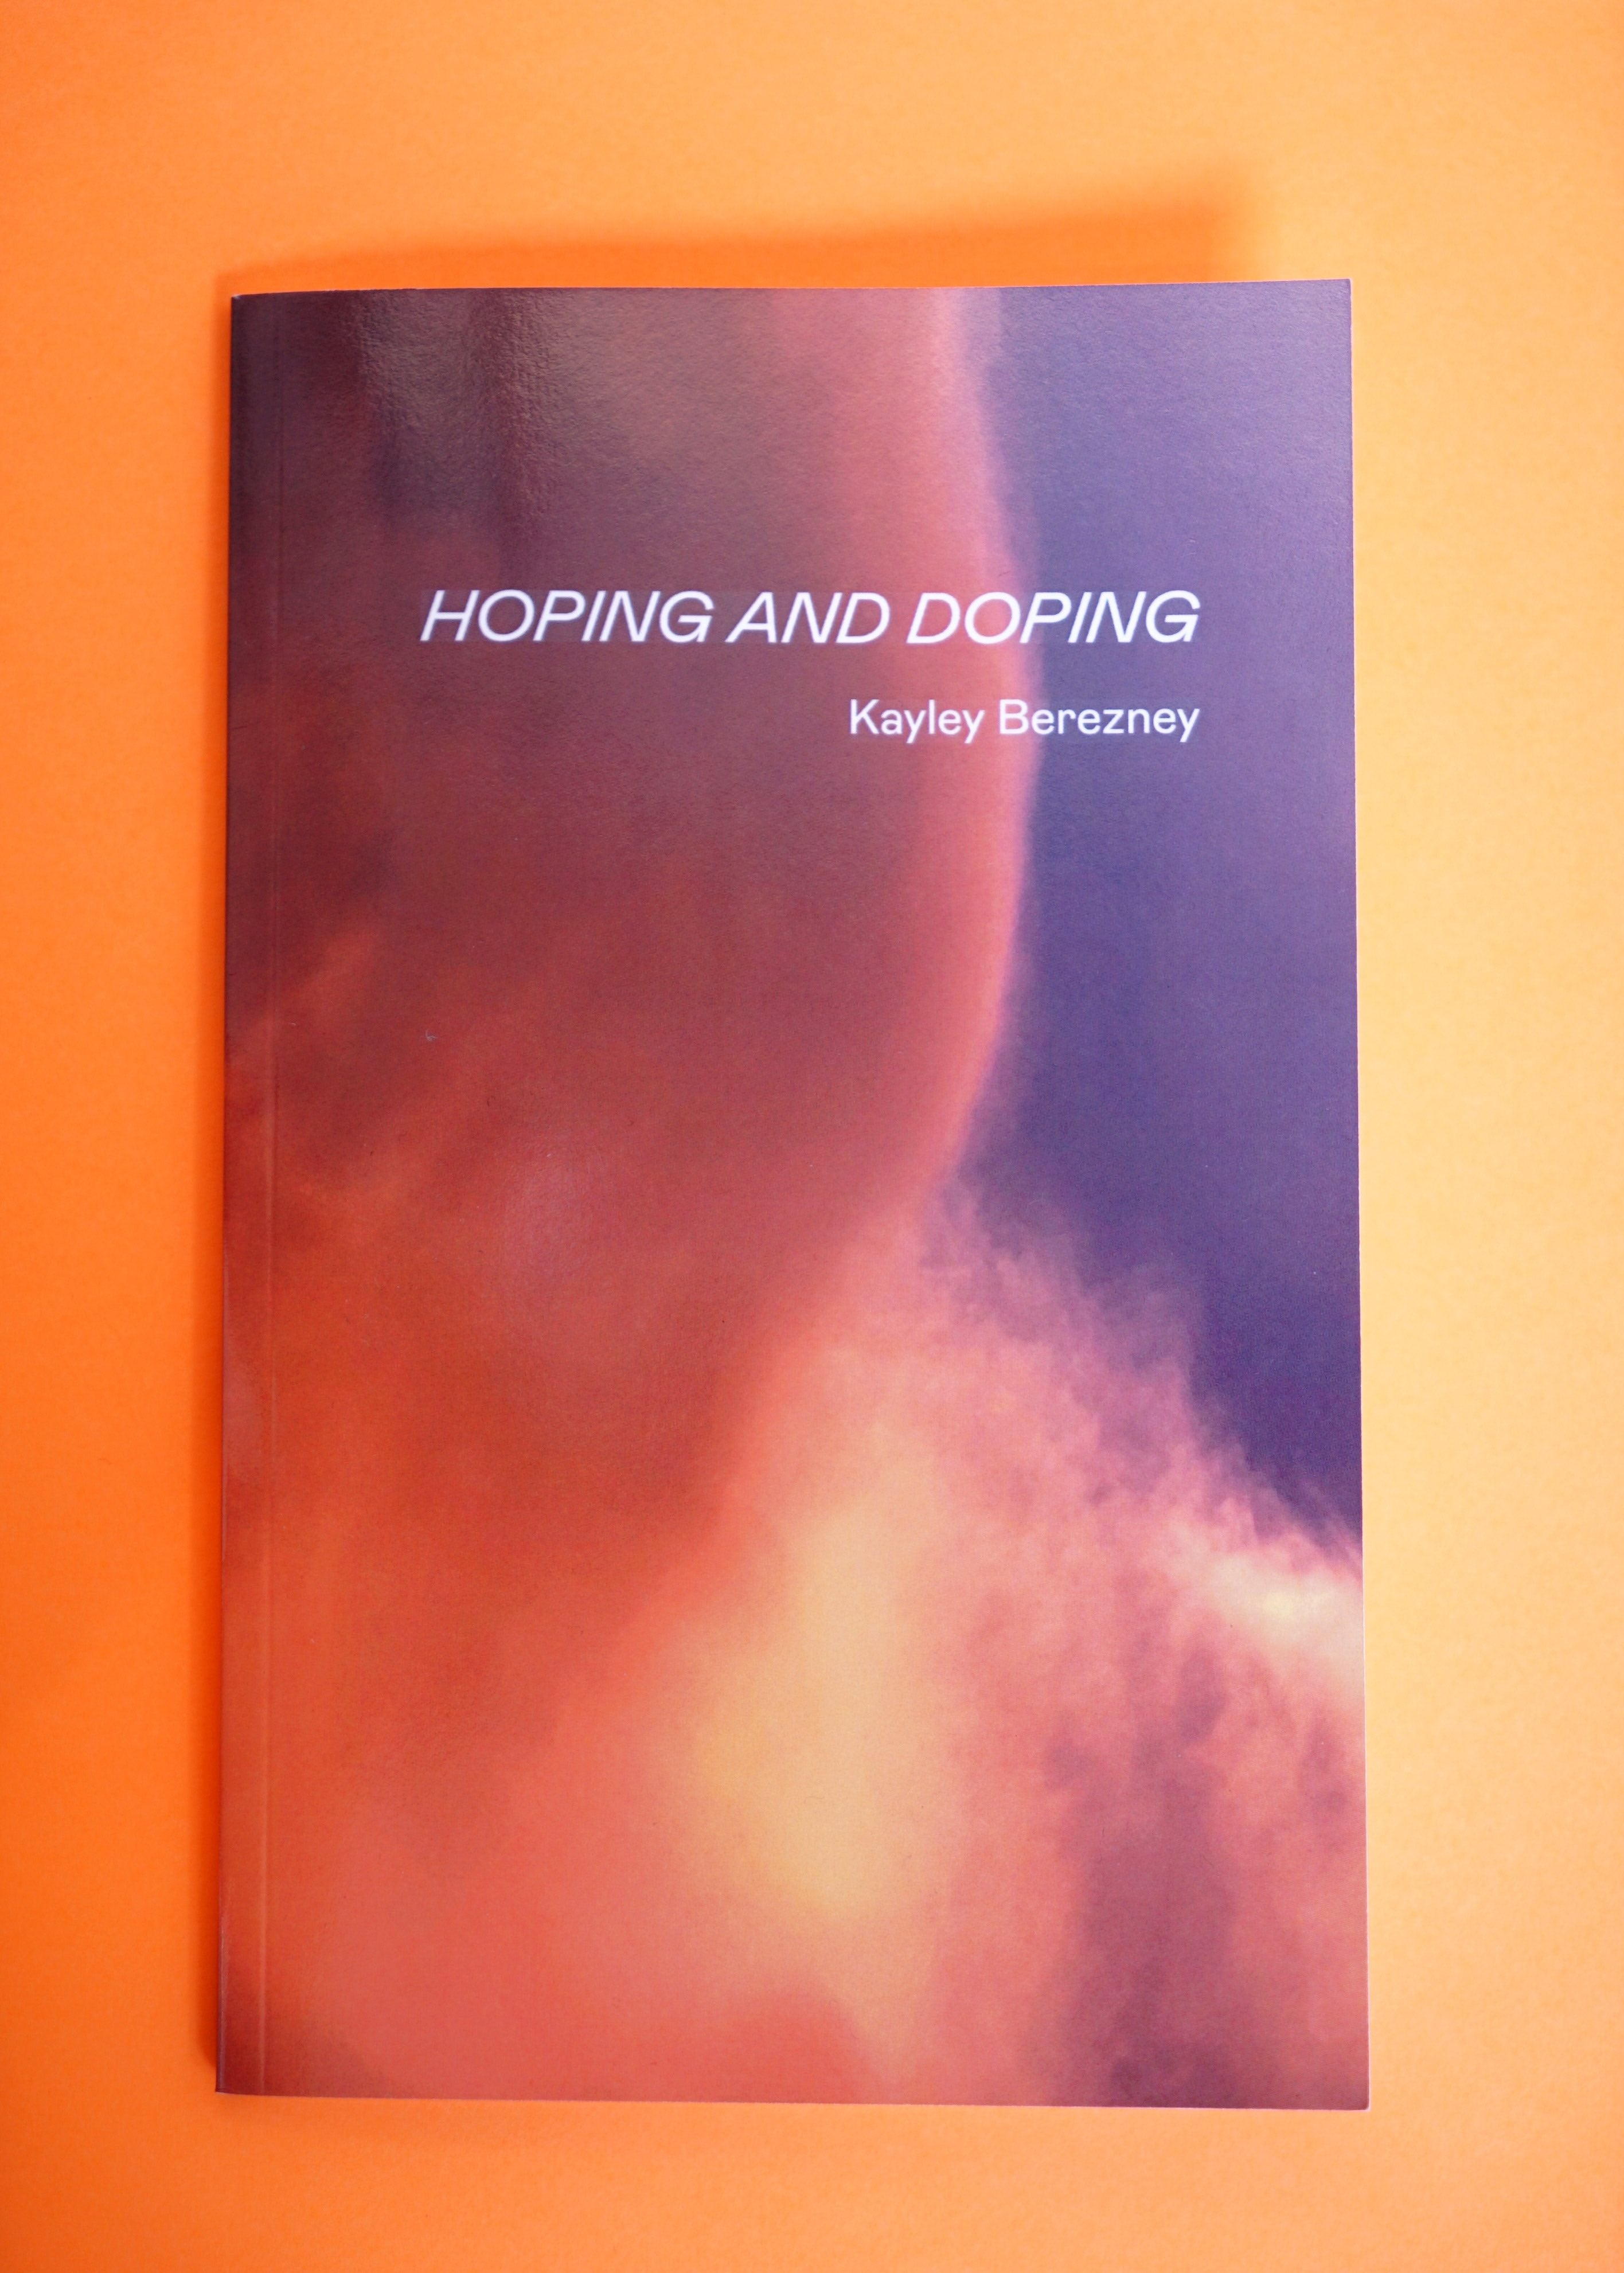 HOPING AND DOPING